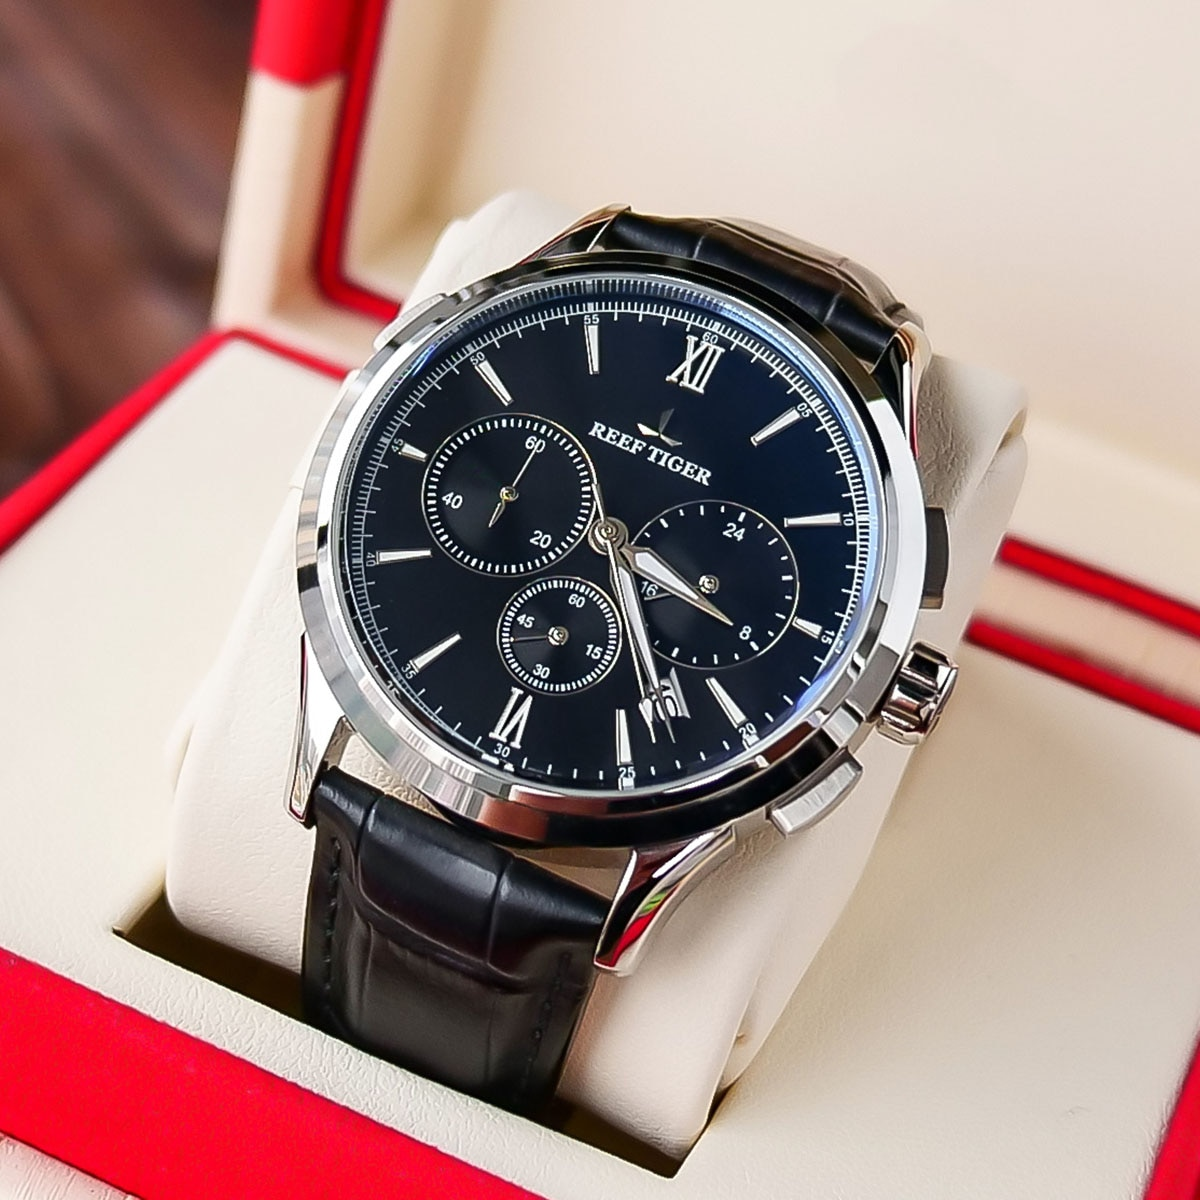 2021 Reef Tiger/RT Top Brand Luxury Date Men Watch Black Dial Steel Black Leather Strap Chronograph